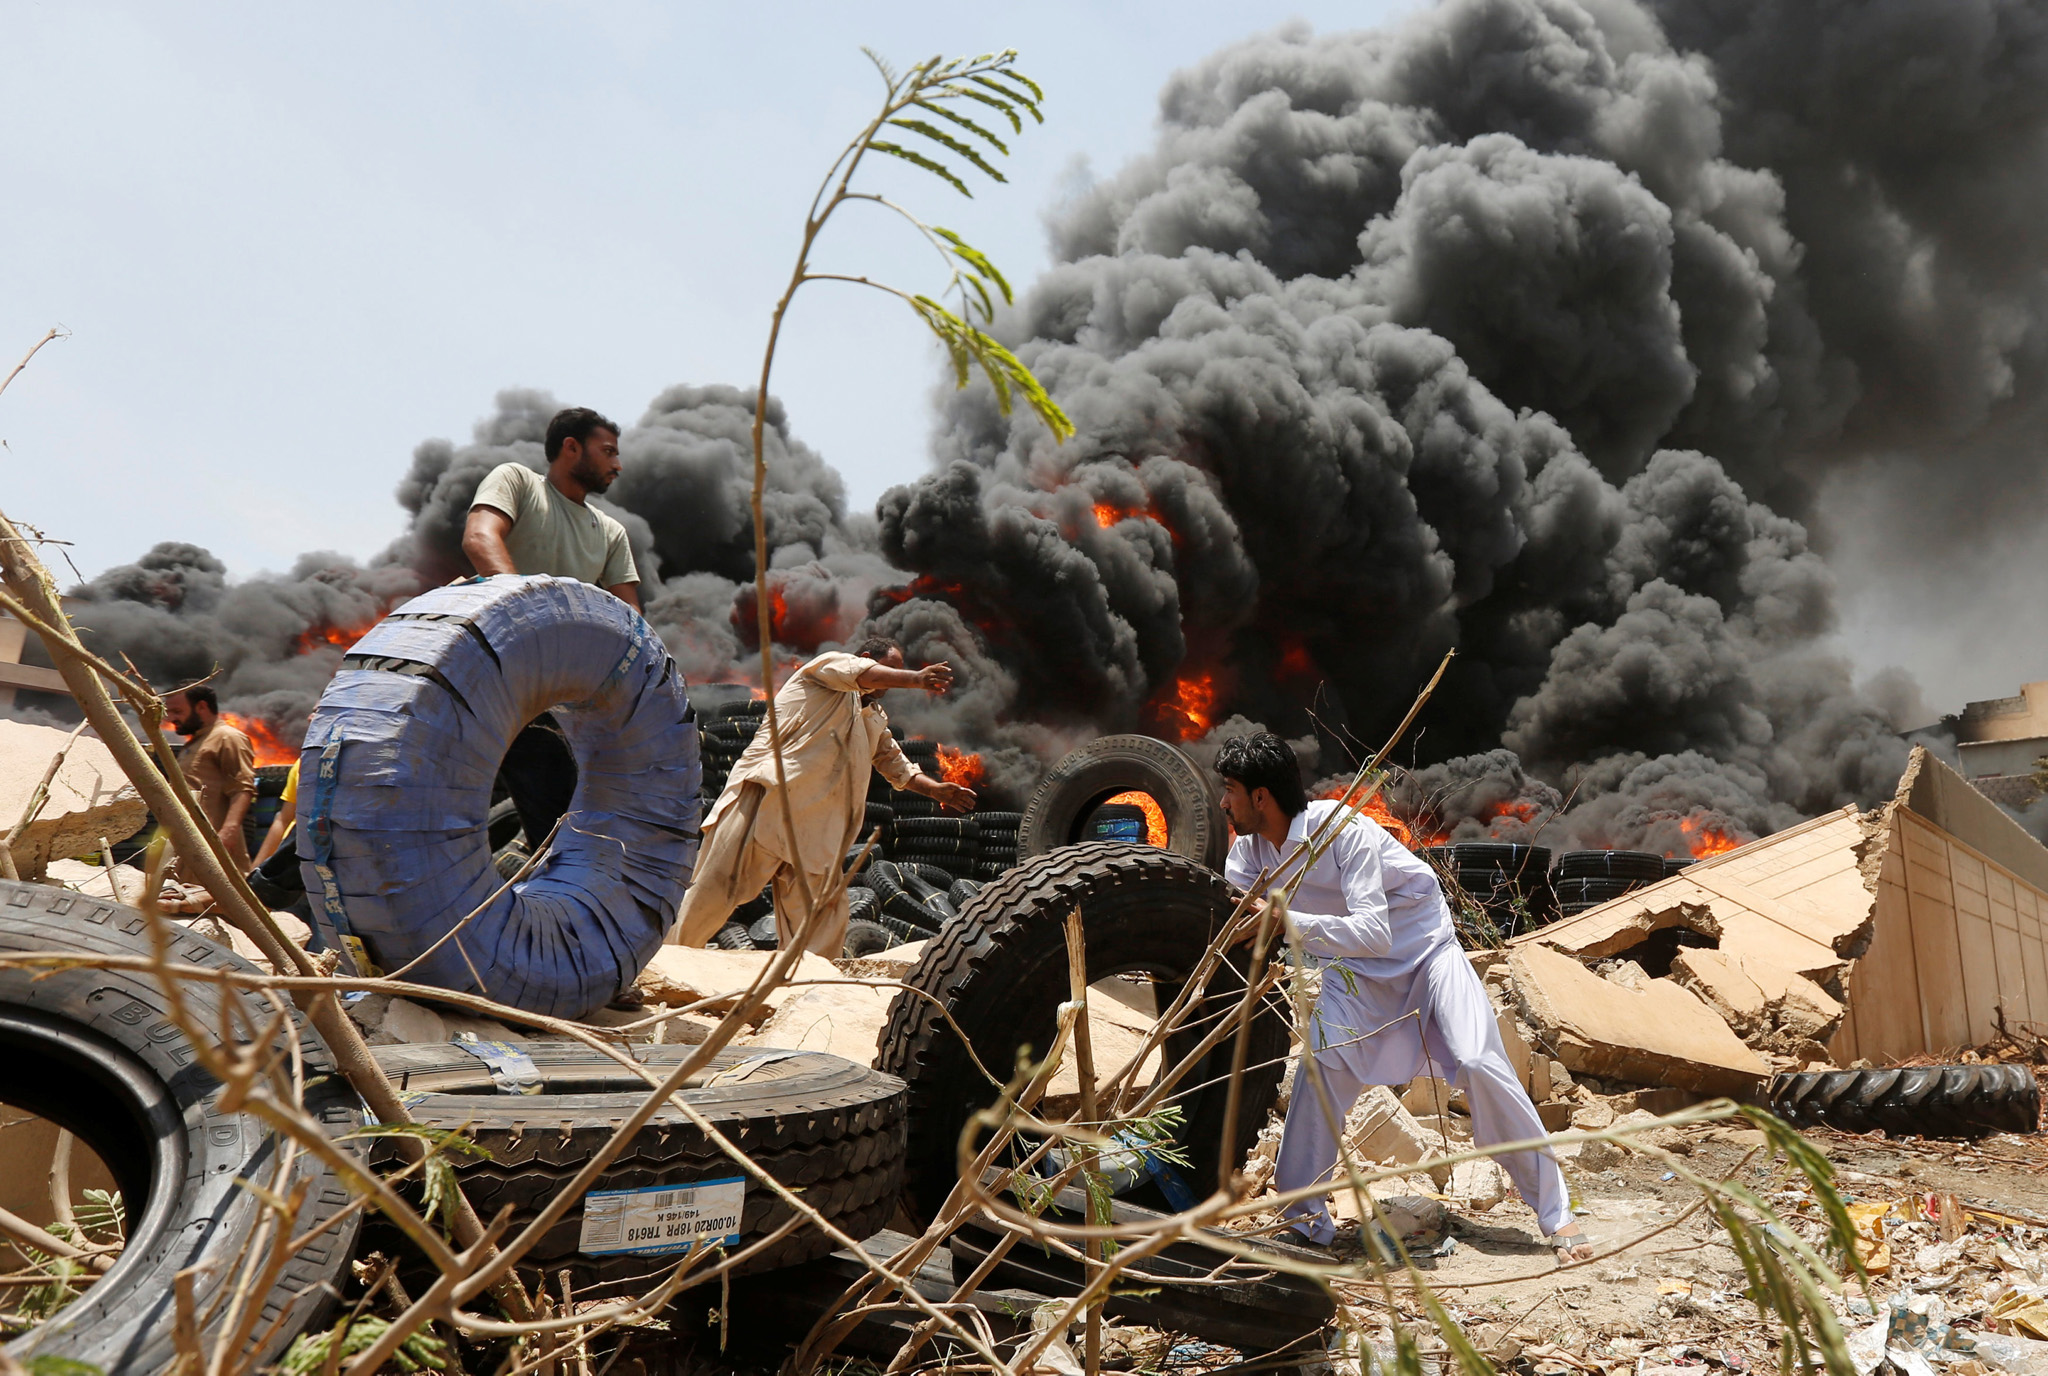 Workers move tires from a warehouse after a fire broke out at an industrial zone in Karachi, Pakistan